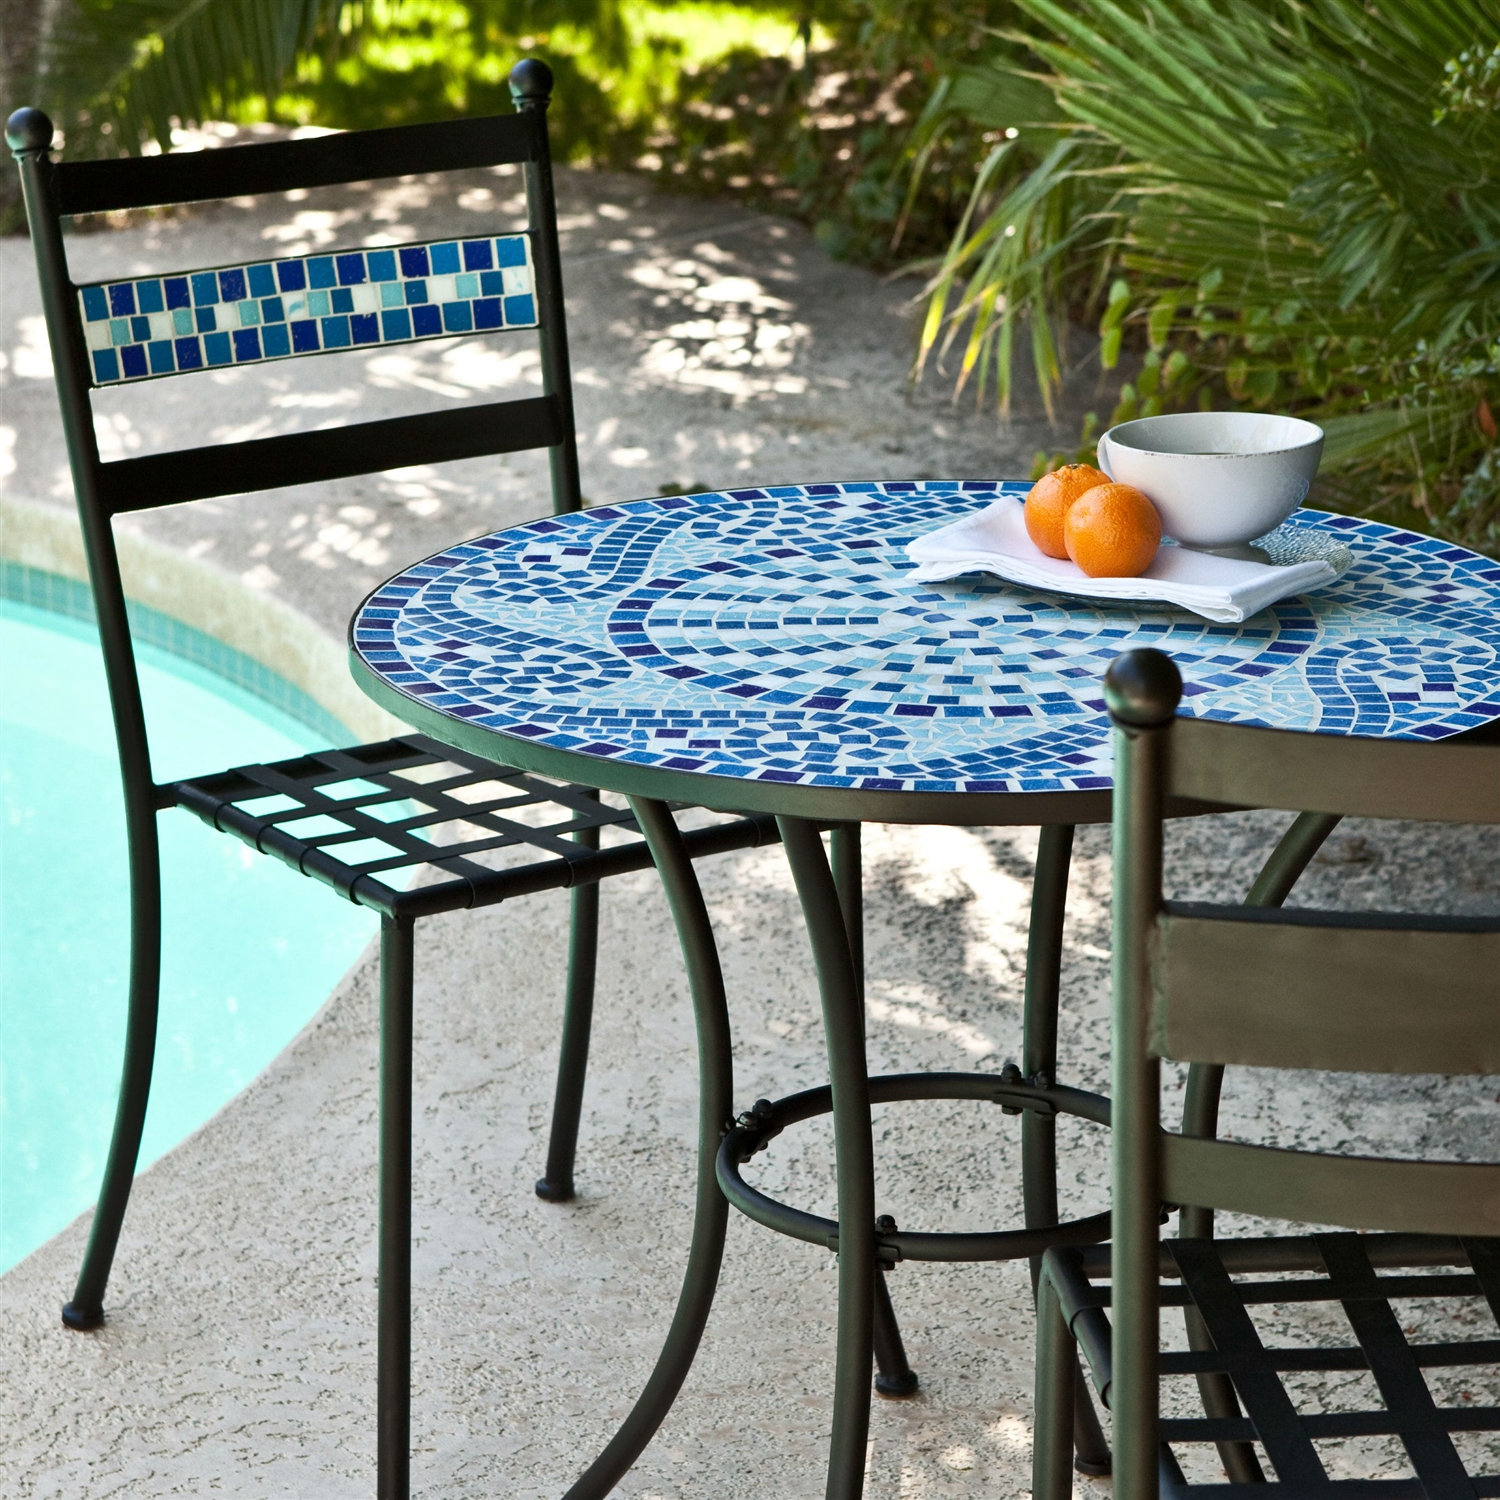 outdoor 3 piece aqua blue mosaic tiles patio furniture bistro set rh fastfurnishings com patio bistro tables lowe's patio bistro tables lowe's